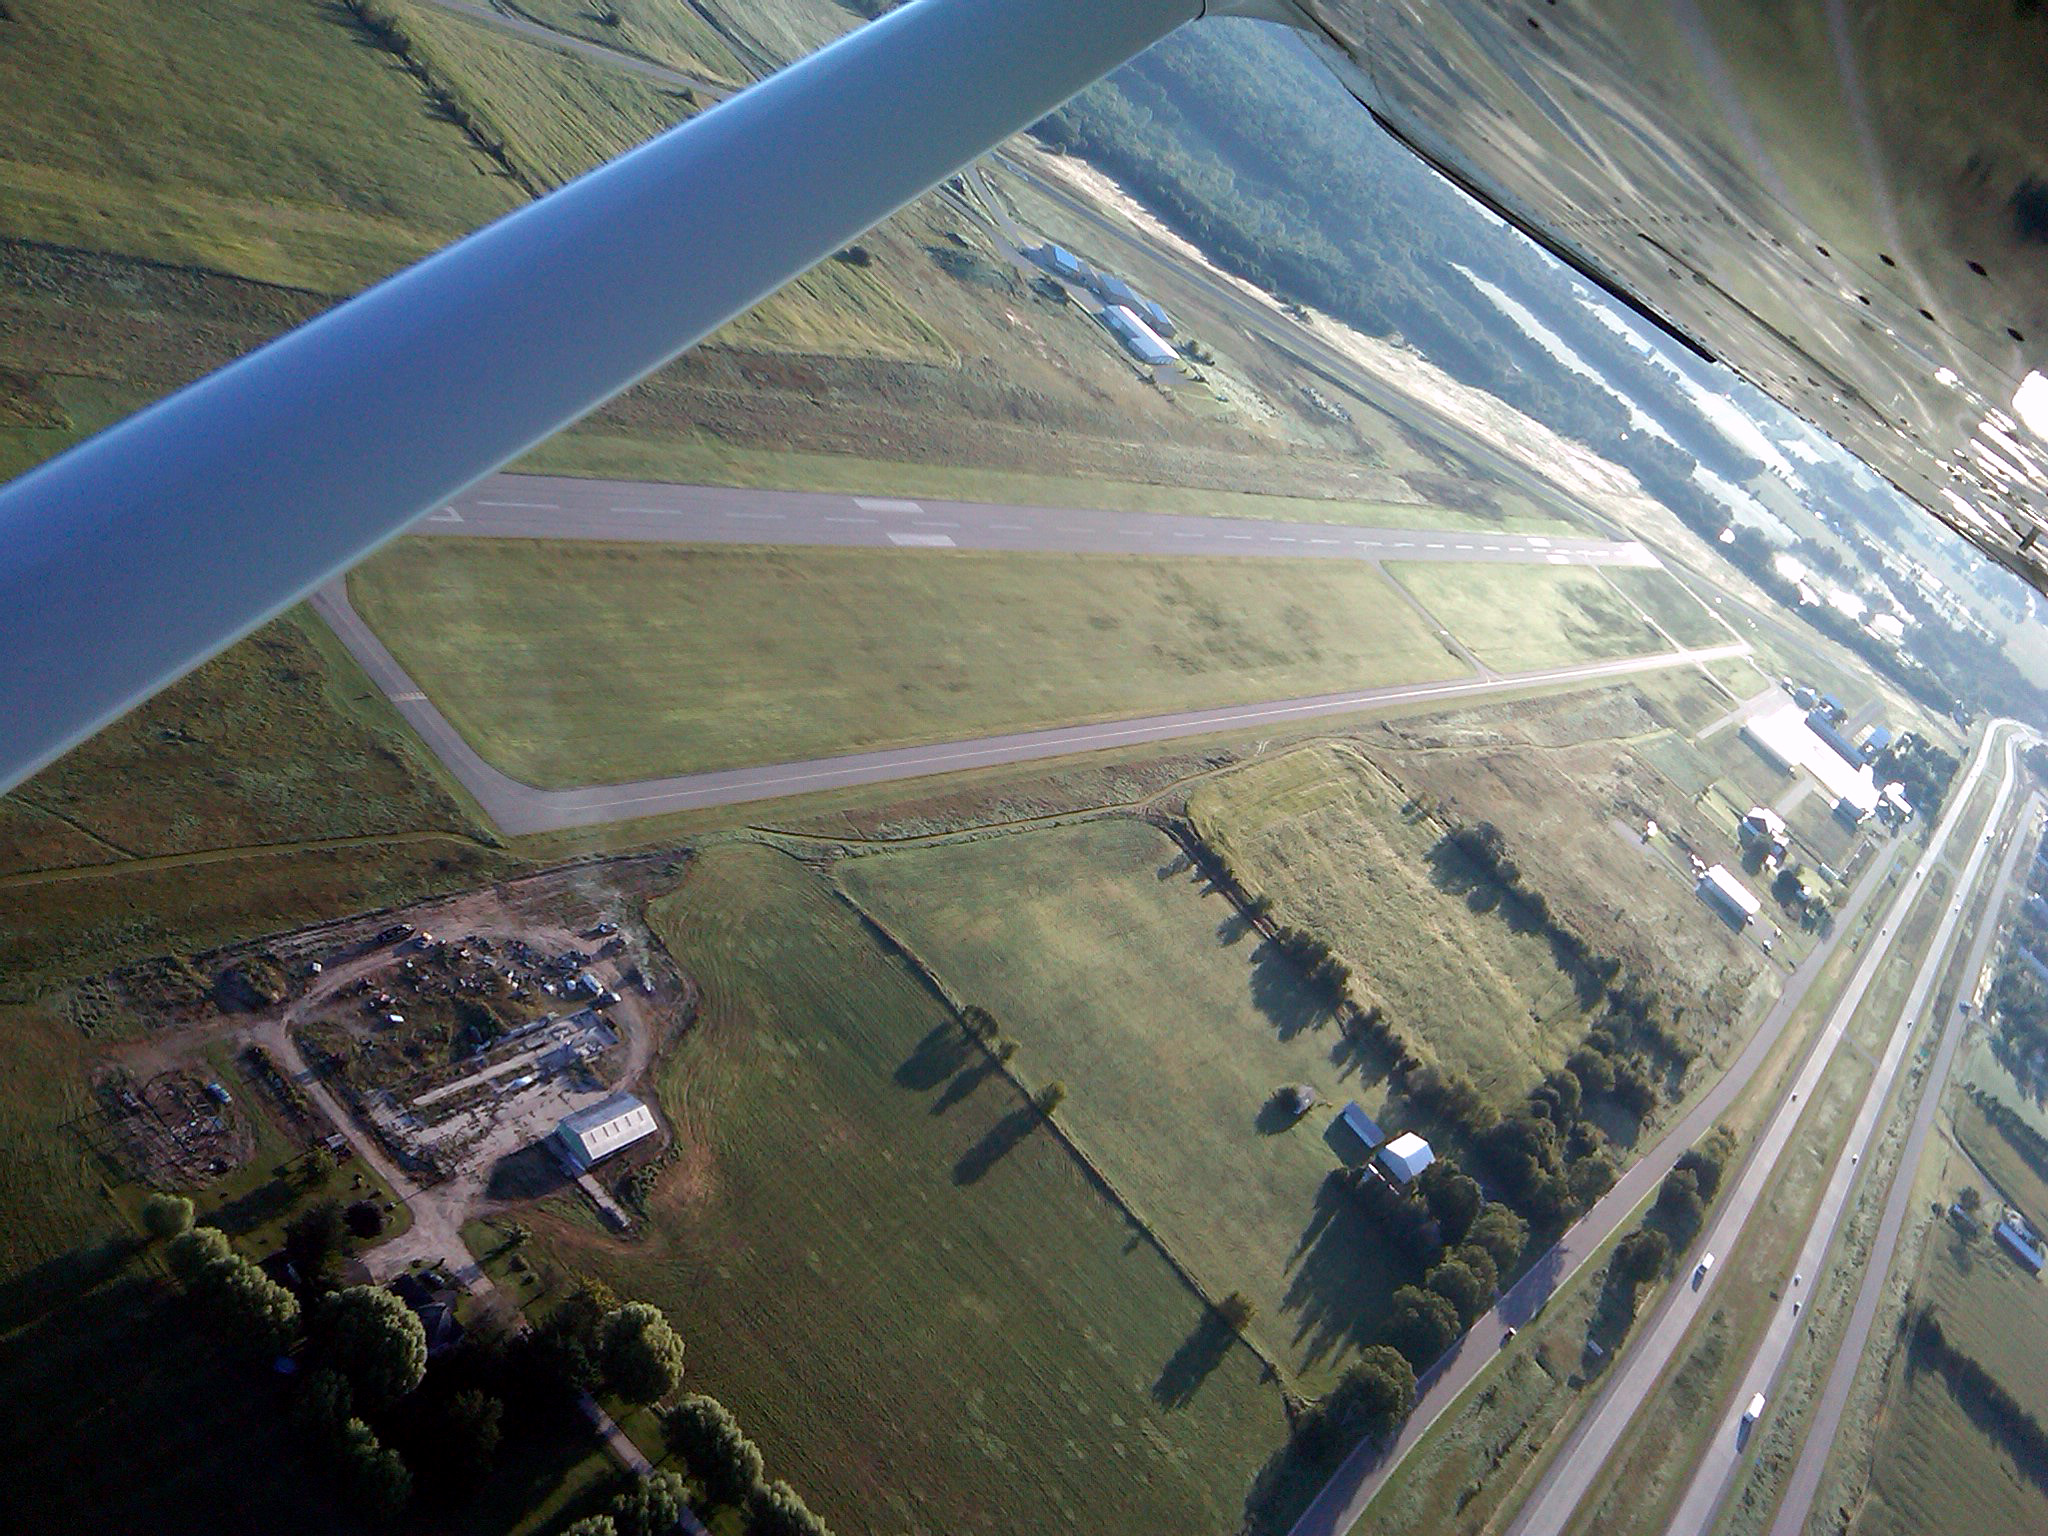 John H. Batten Airport From Above